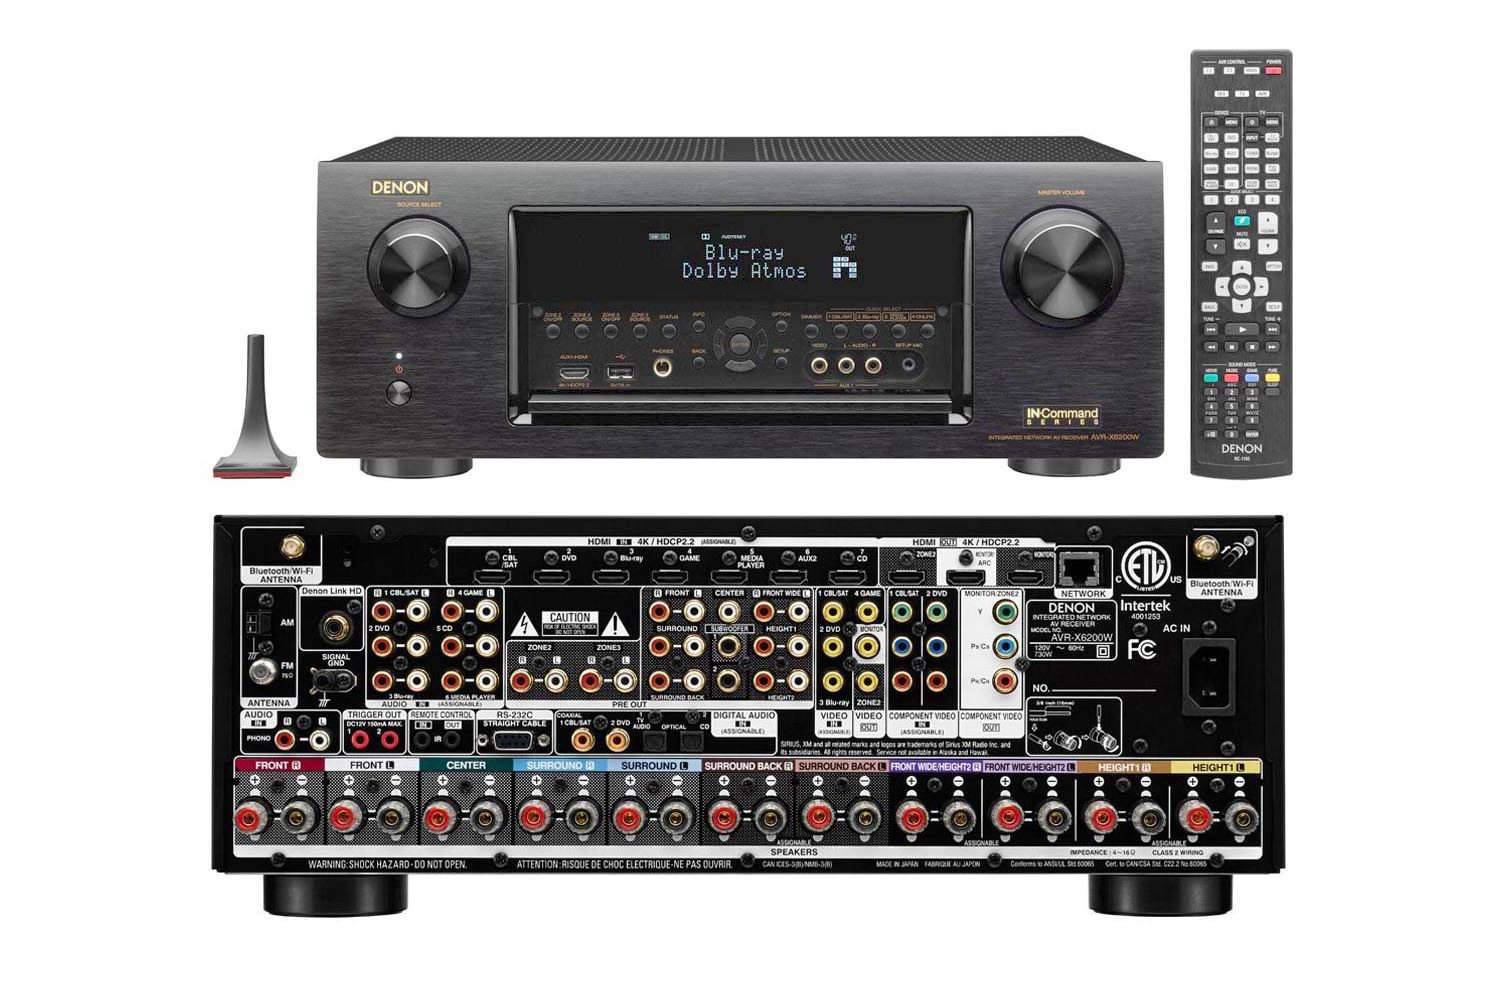 denon avr x6200w high end home theater receiver profiled. Black Bedroom Furniture Sets. Home Design Ideas